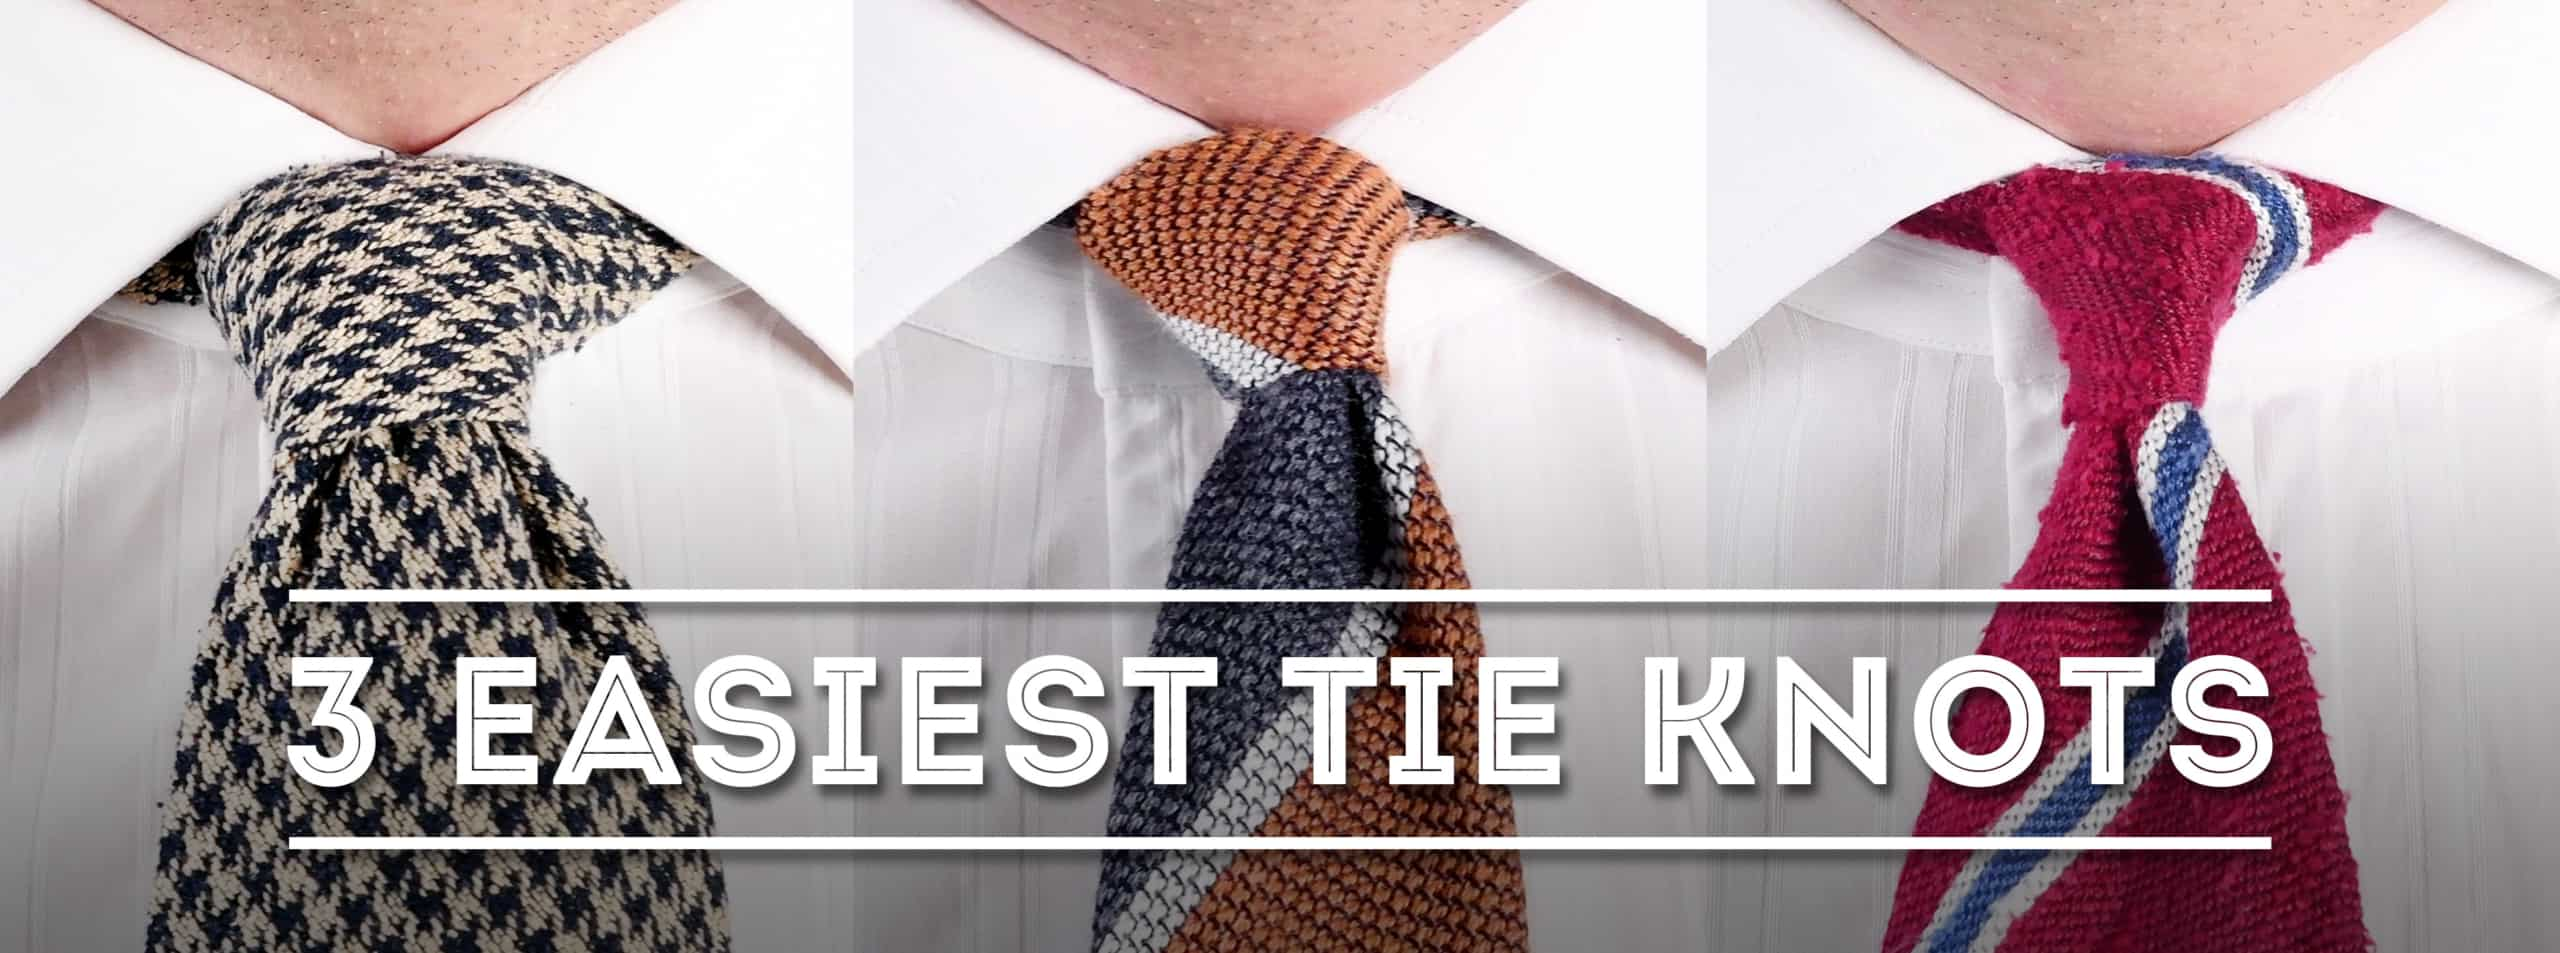 3 Easiest Tie Knots for Beginners - Use These Simple Necktie Knots — Gentleman's Gazette